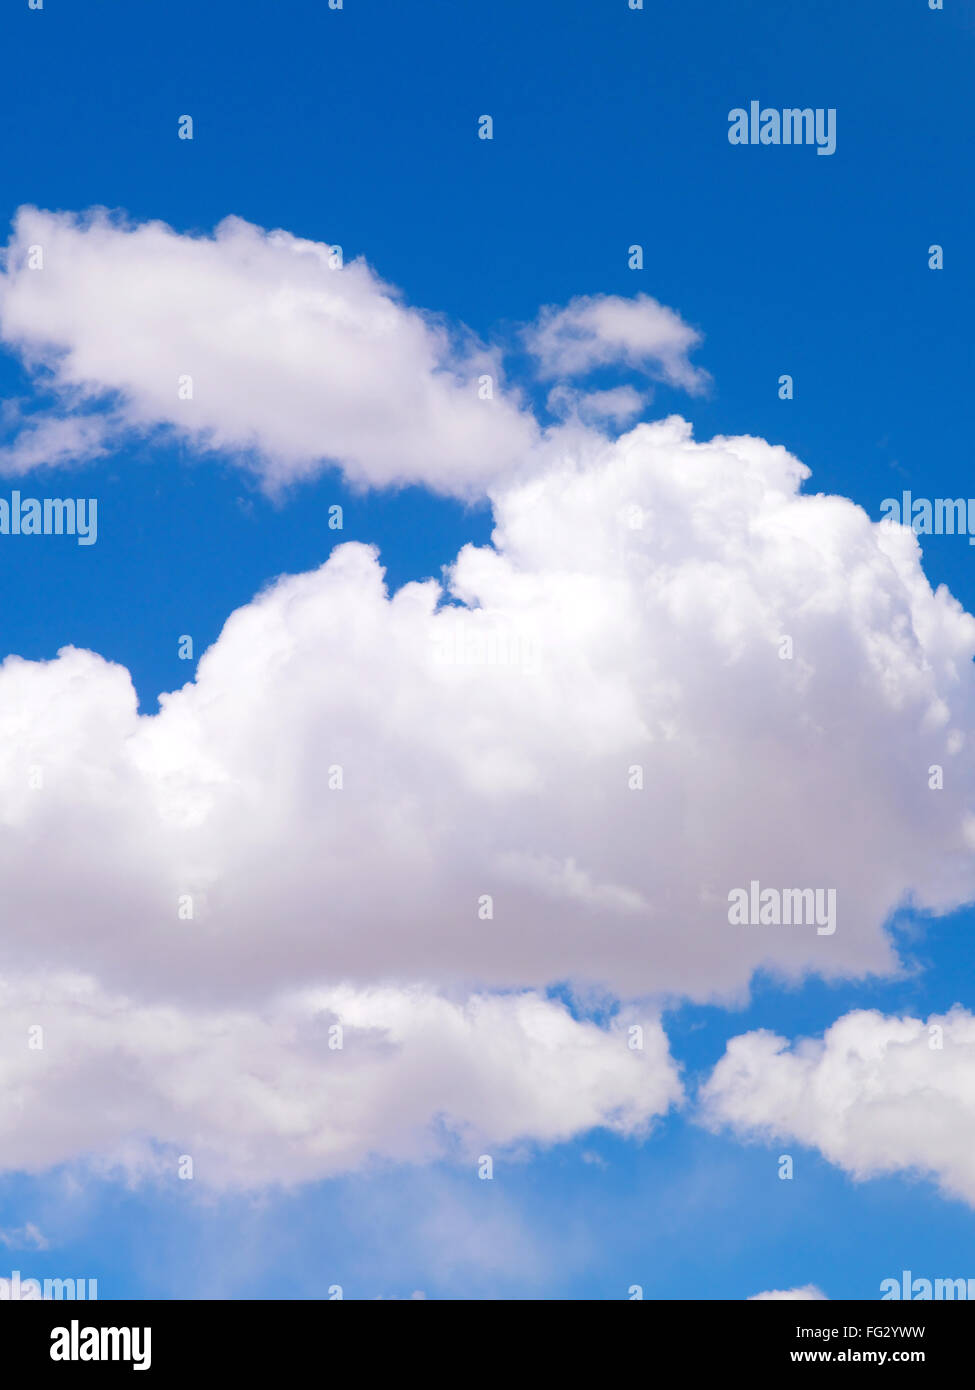 White cloud formation against blue skies - Stock Image